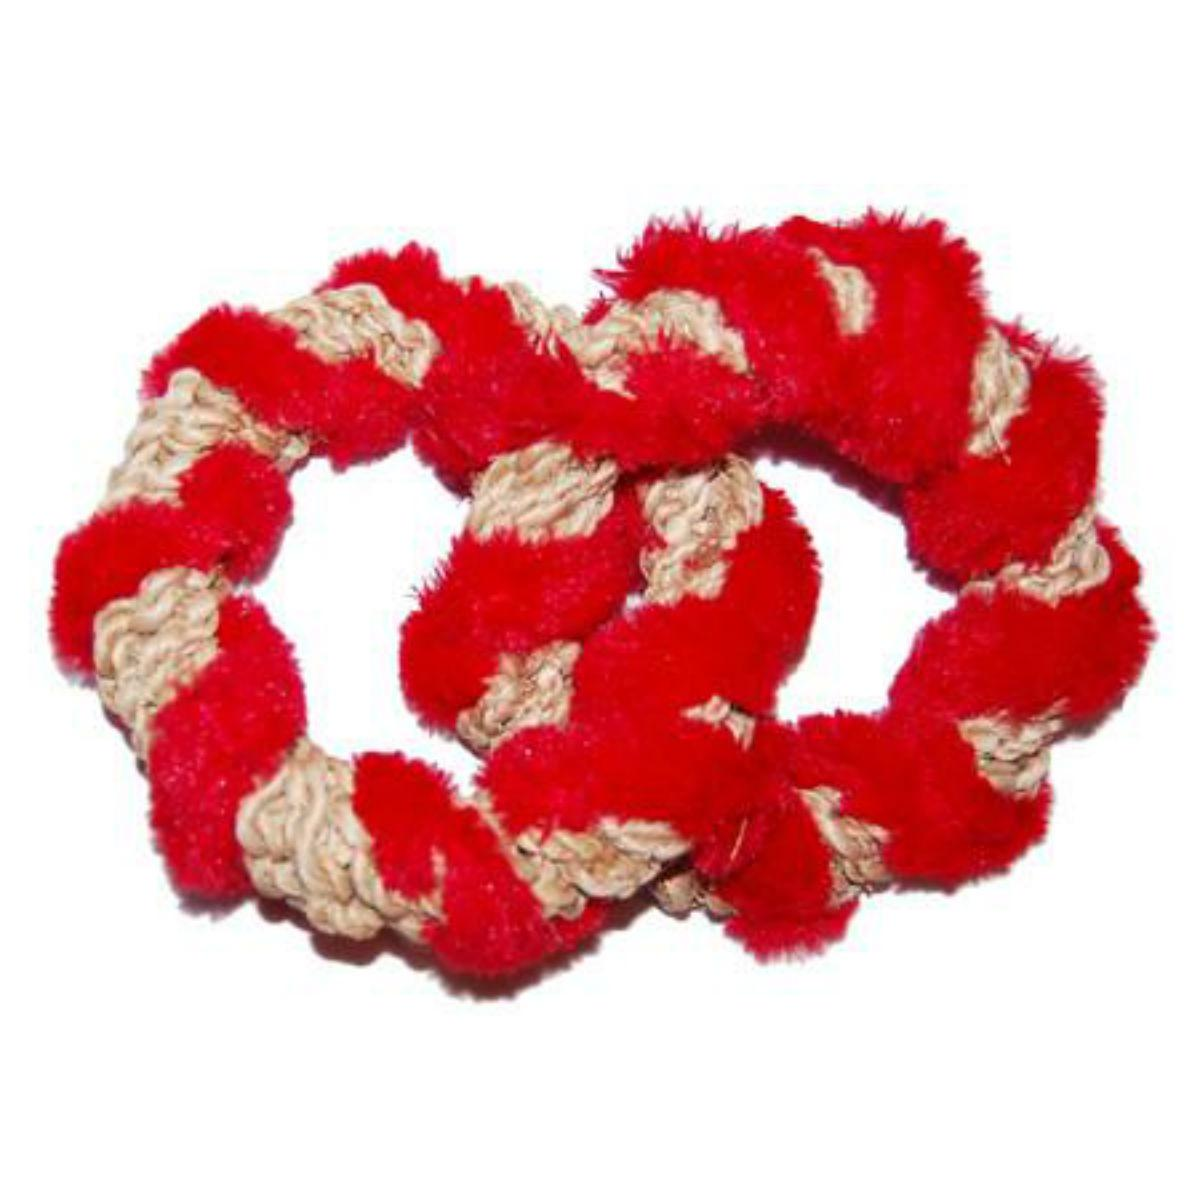 ABACA-DABRA 2 Circle Tug Dog Toy from WaLk-e-Woo - Natural with Red